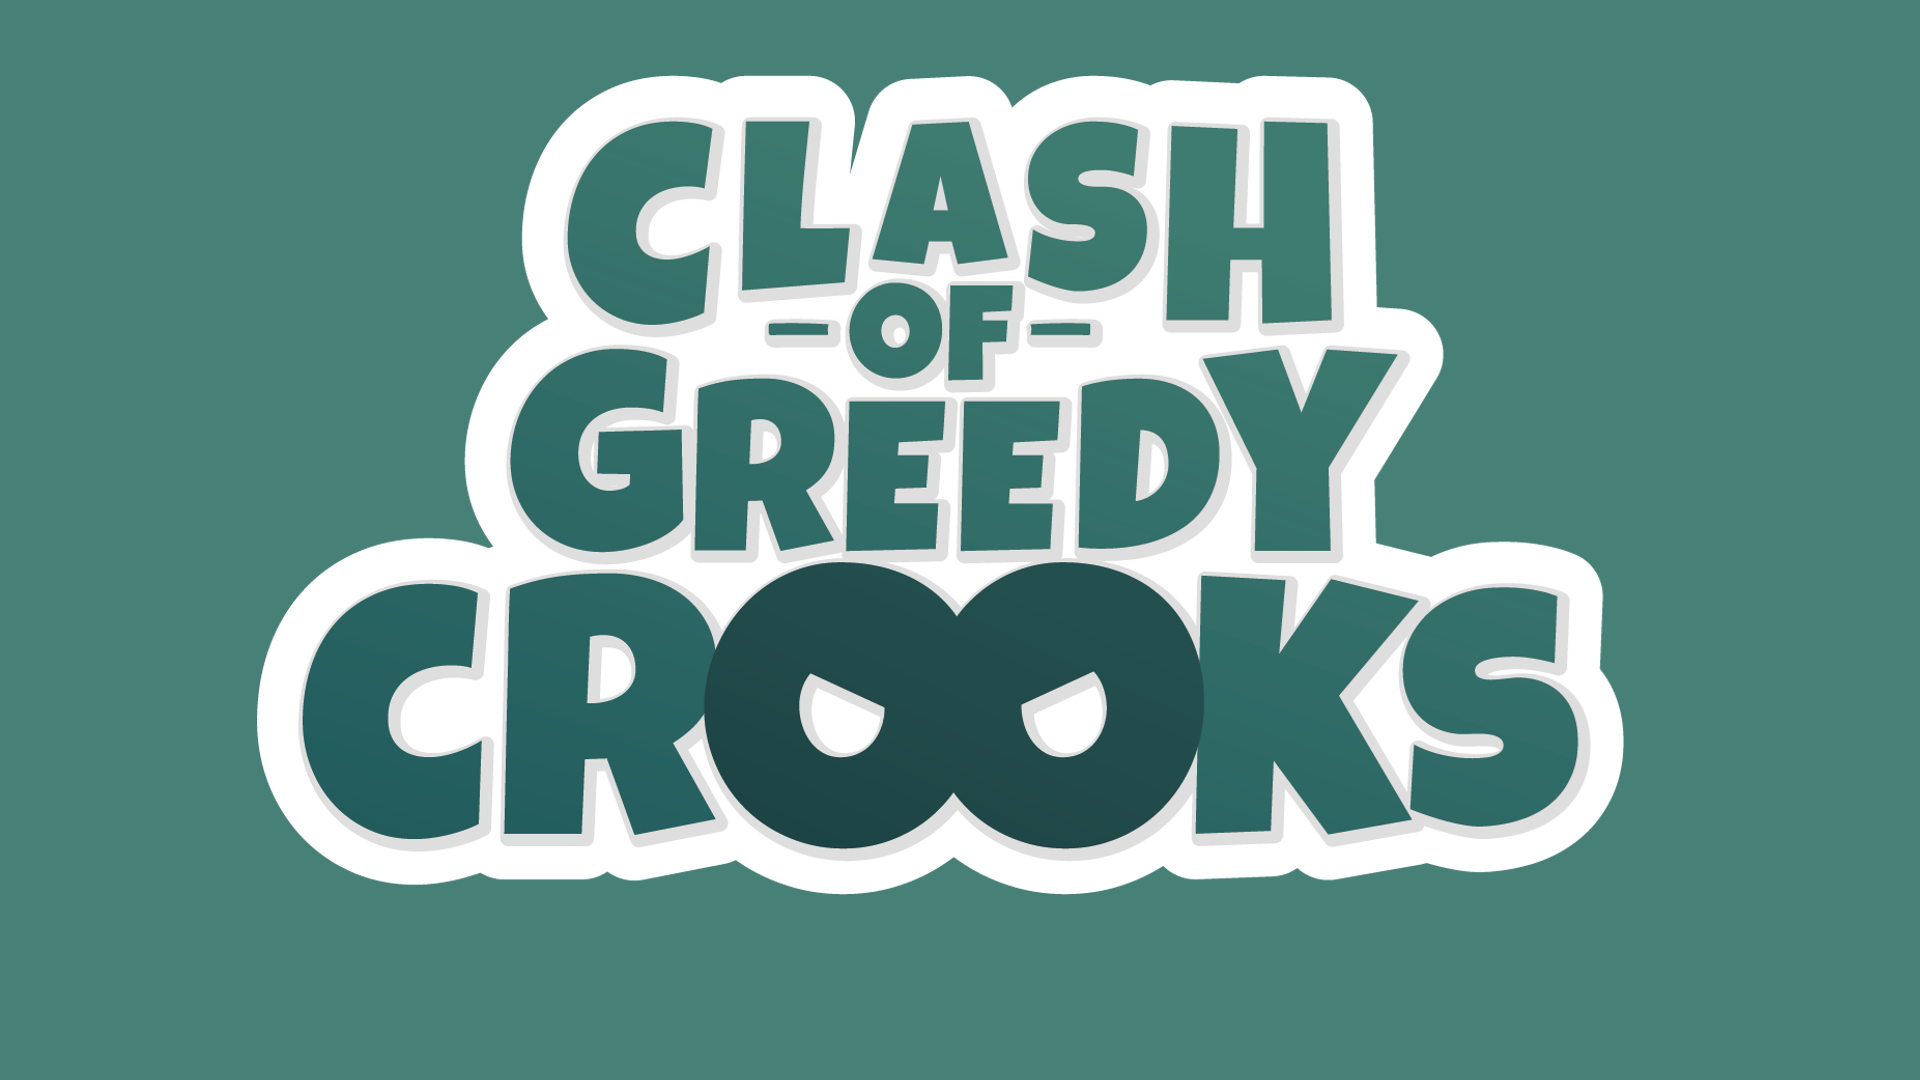 Clash of Greedy Crooks